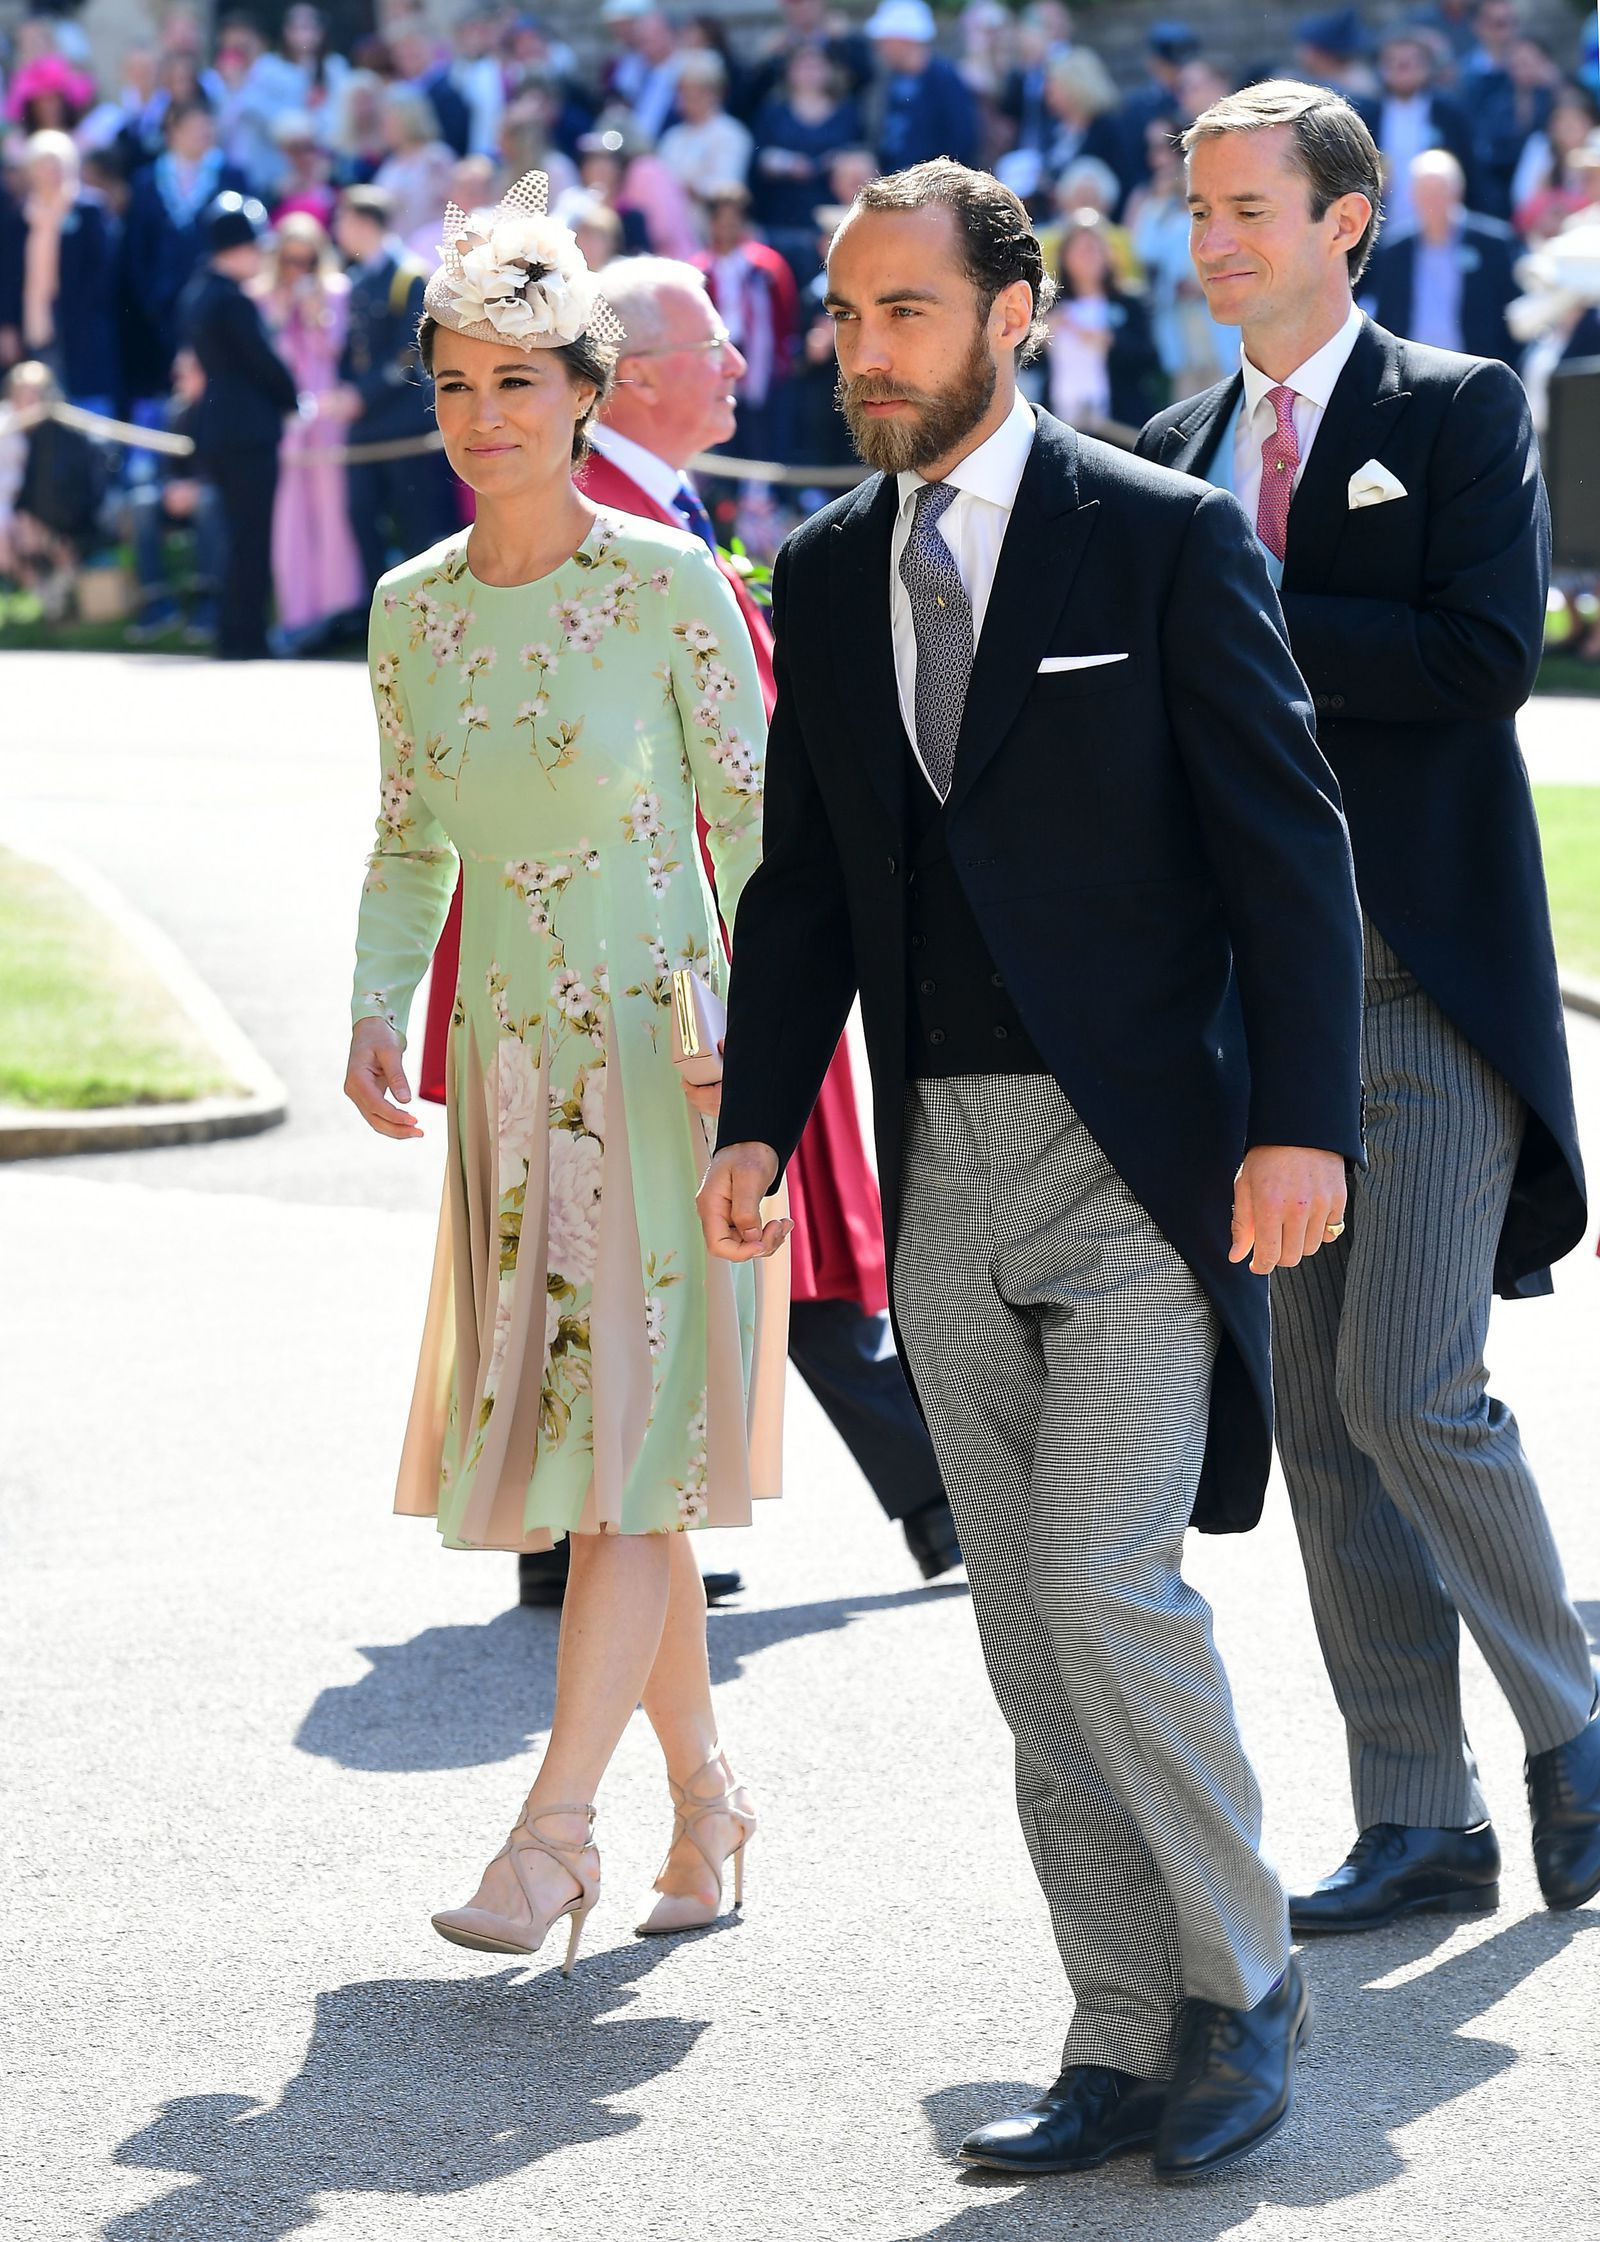 539ec03ed8 Pippa Middleton Was Glowing in a Silk Floral Dress at the Royal  Weddinggoodhousemag